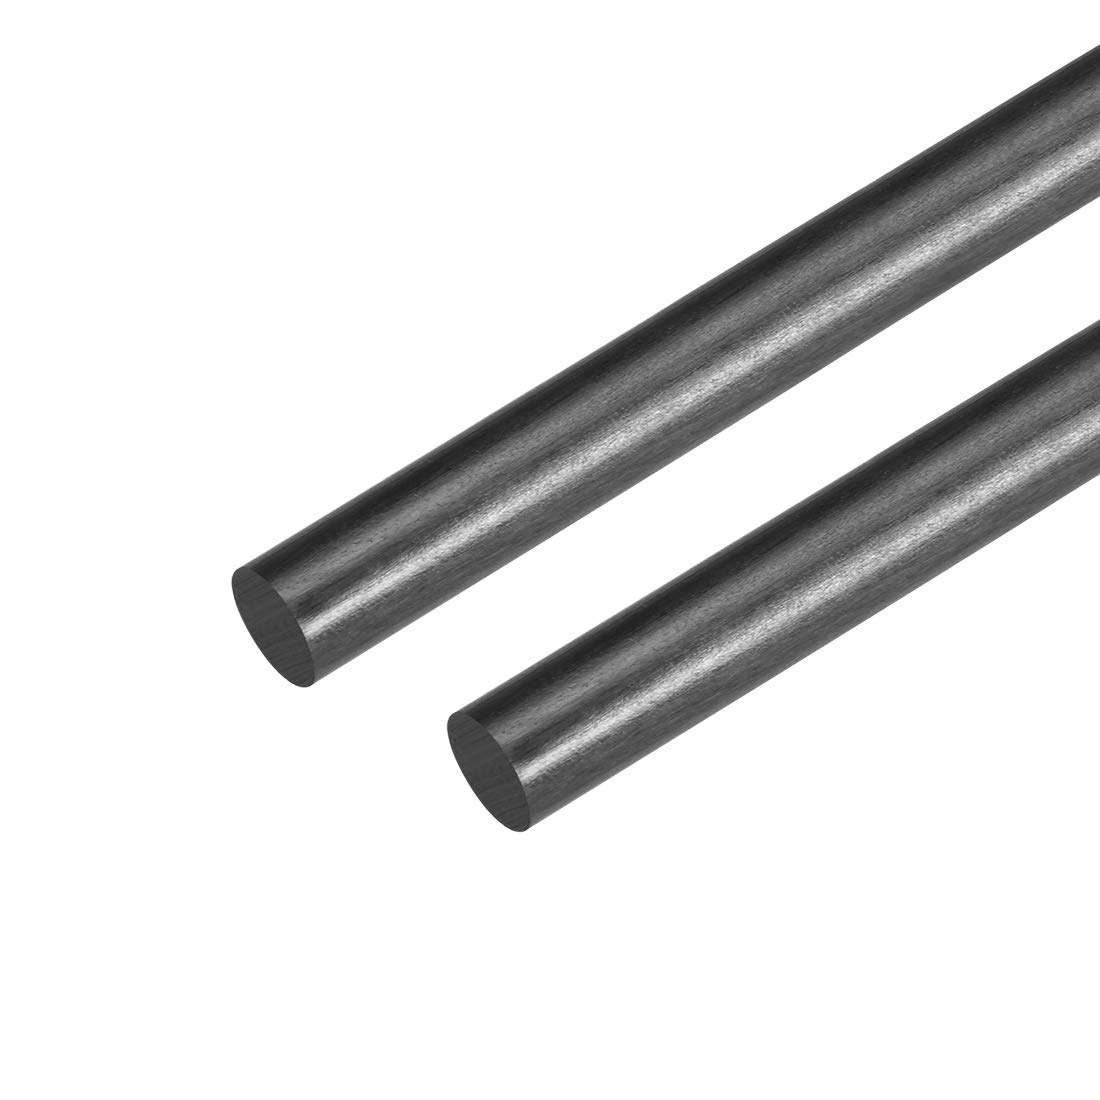 200mm 7.8 inch uxcell 8mm Carbon Fiber Bar For RC Airplane Matte Pole US 2pcs